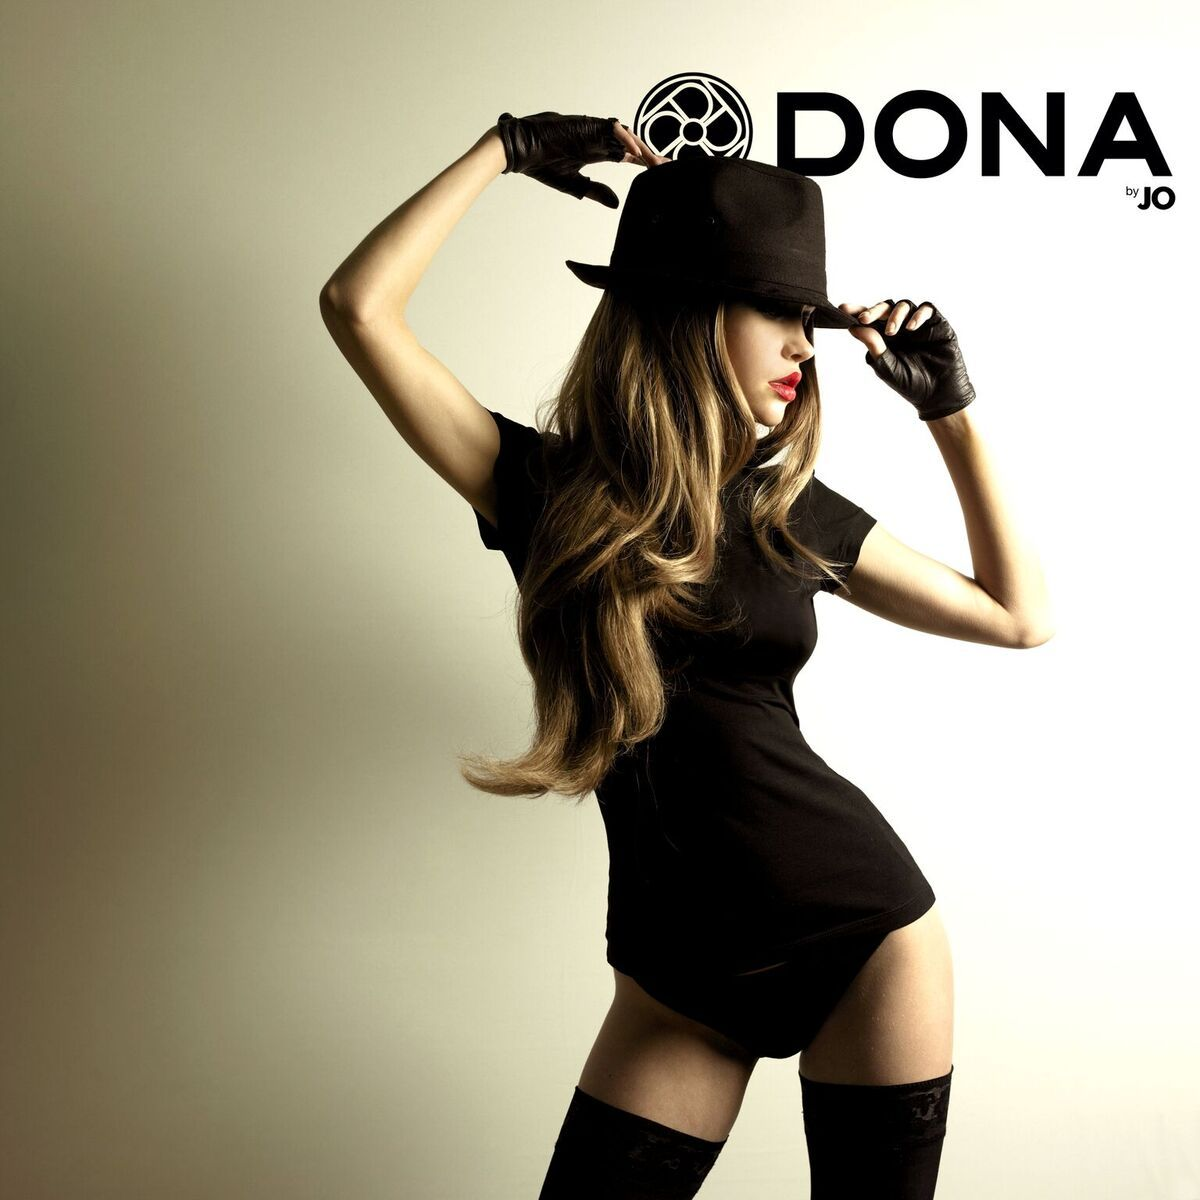 Dona by Jo - a fresh new pheromone infused range - has arrived!